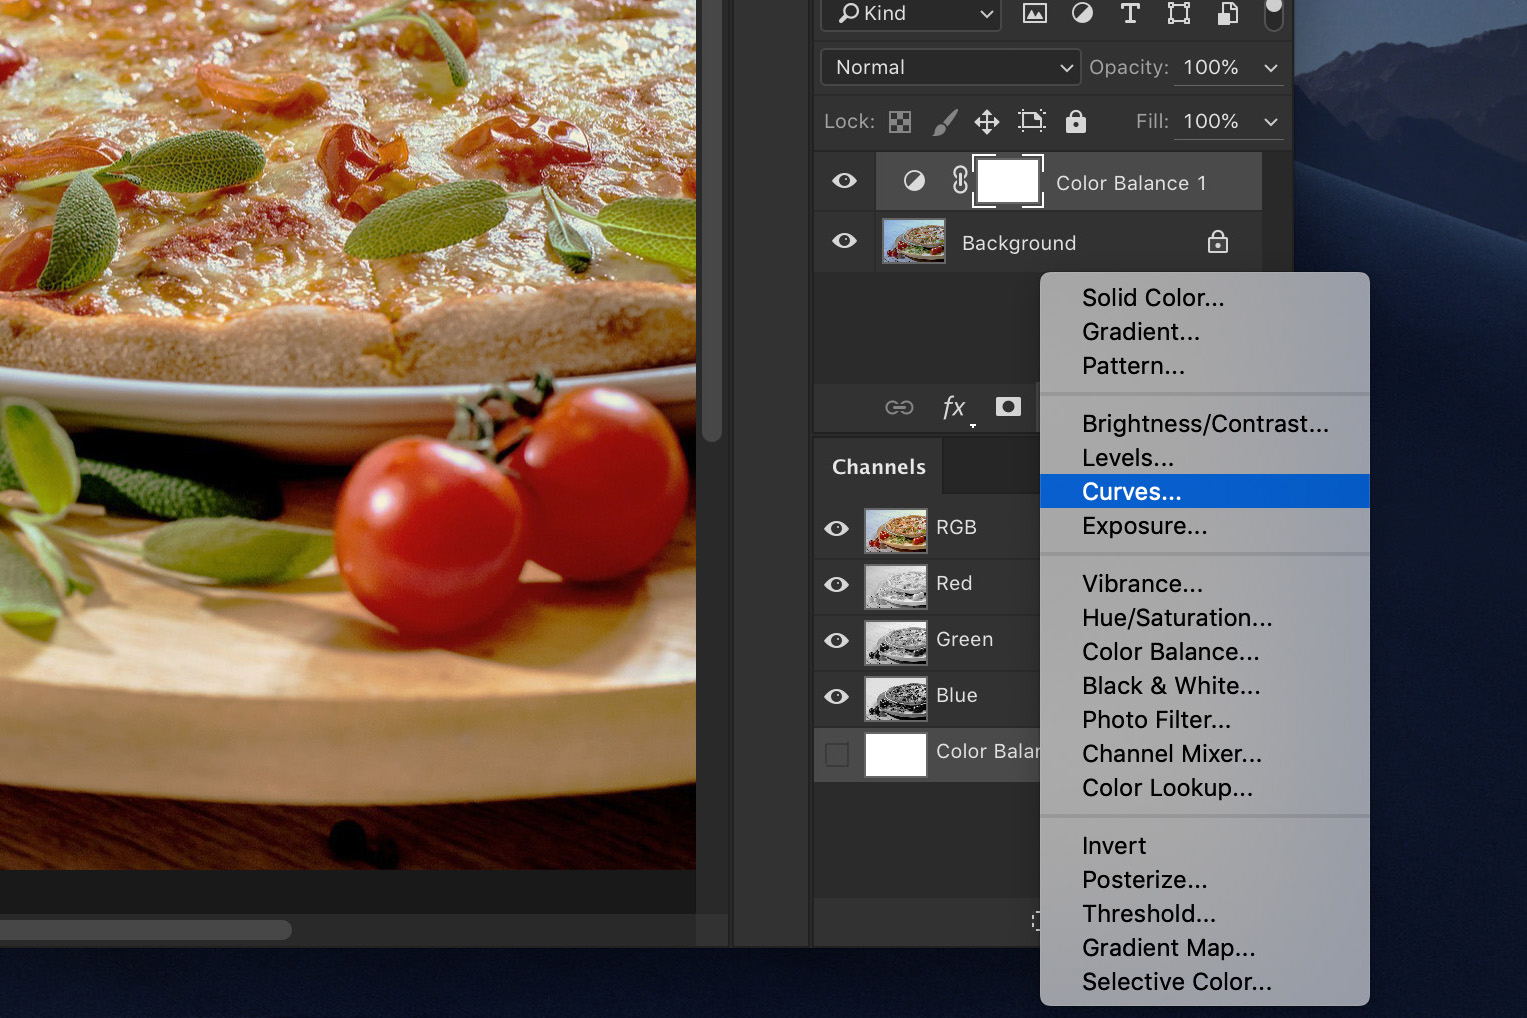 A screenshot showing how to edit food photography in Photoshop - add contrast